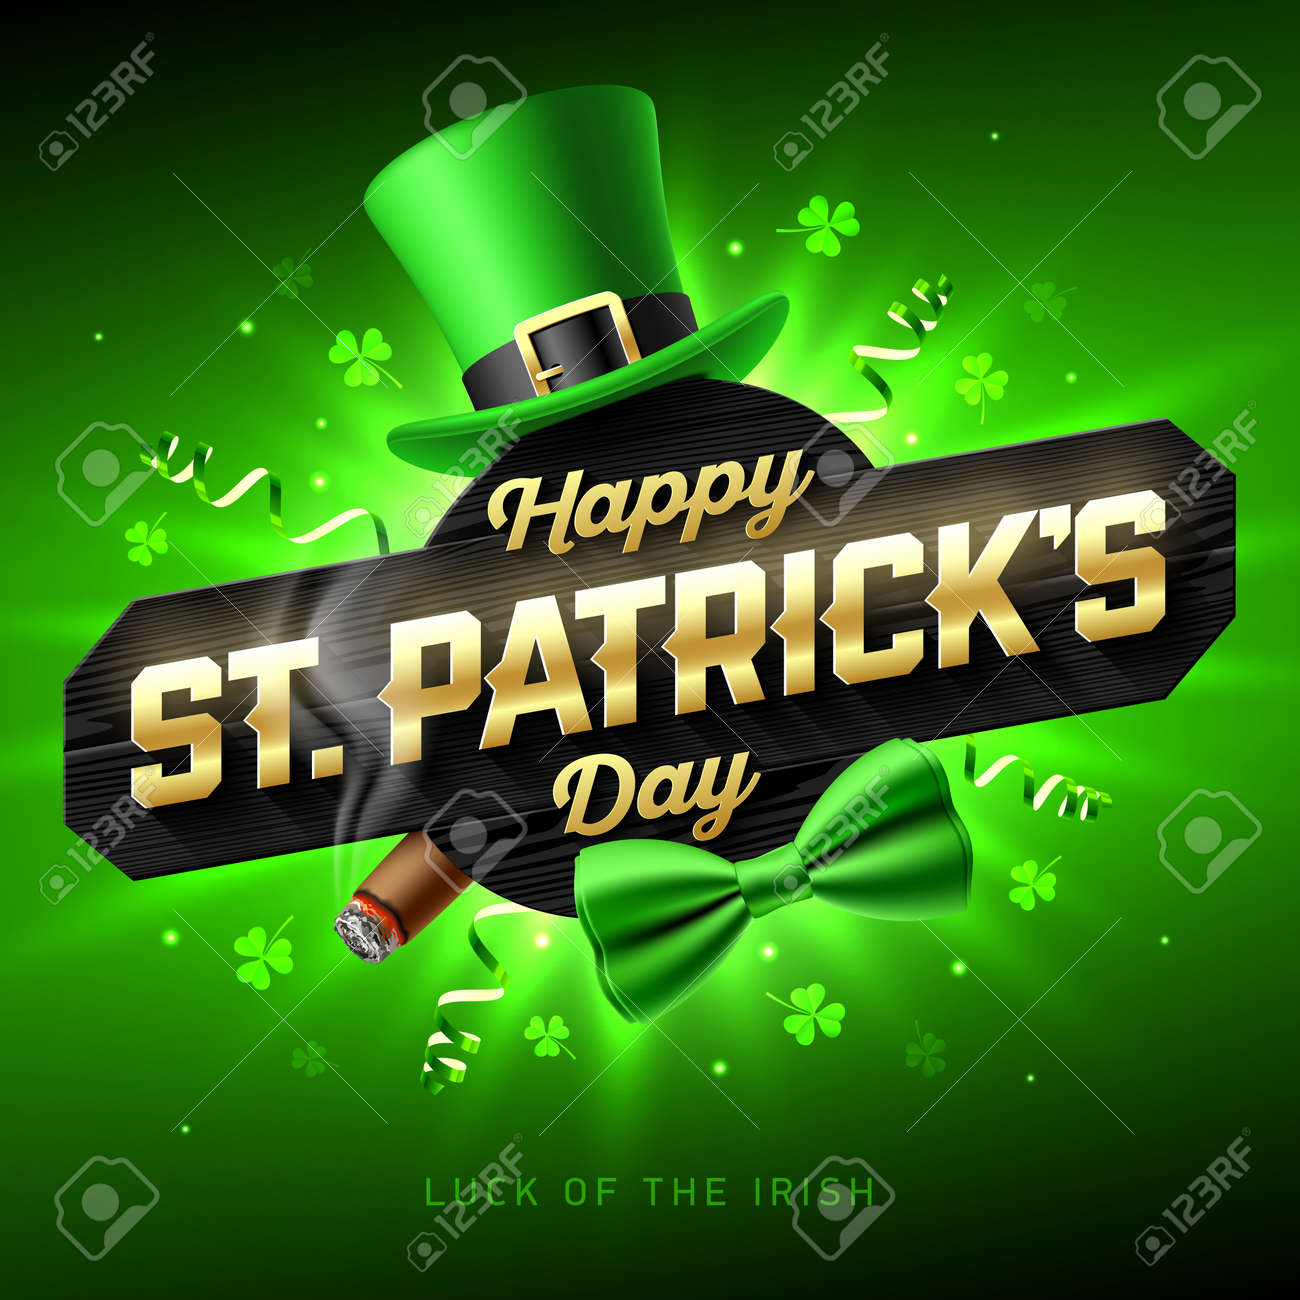 Happy St Patricks Day Greeting Card Poster Or Banner 17 March